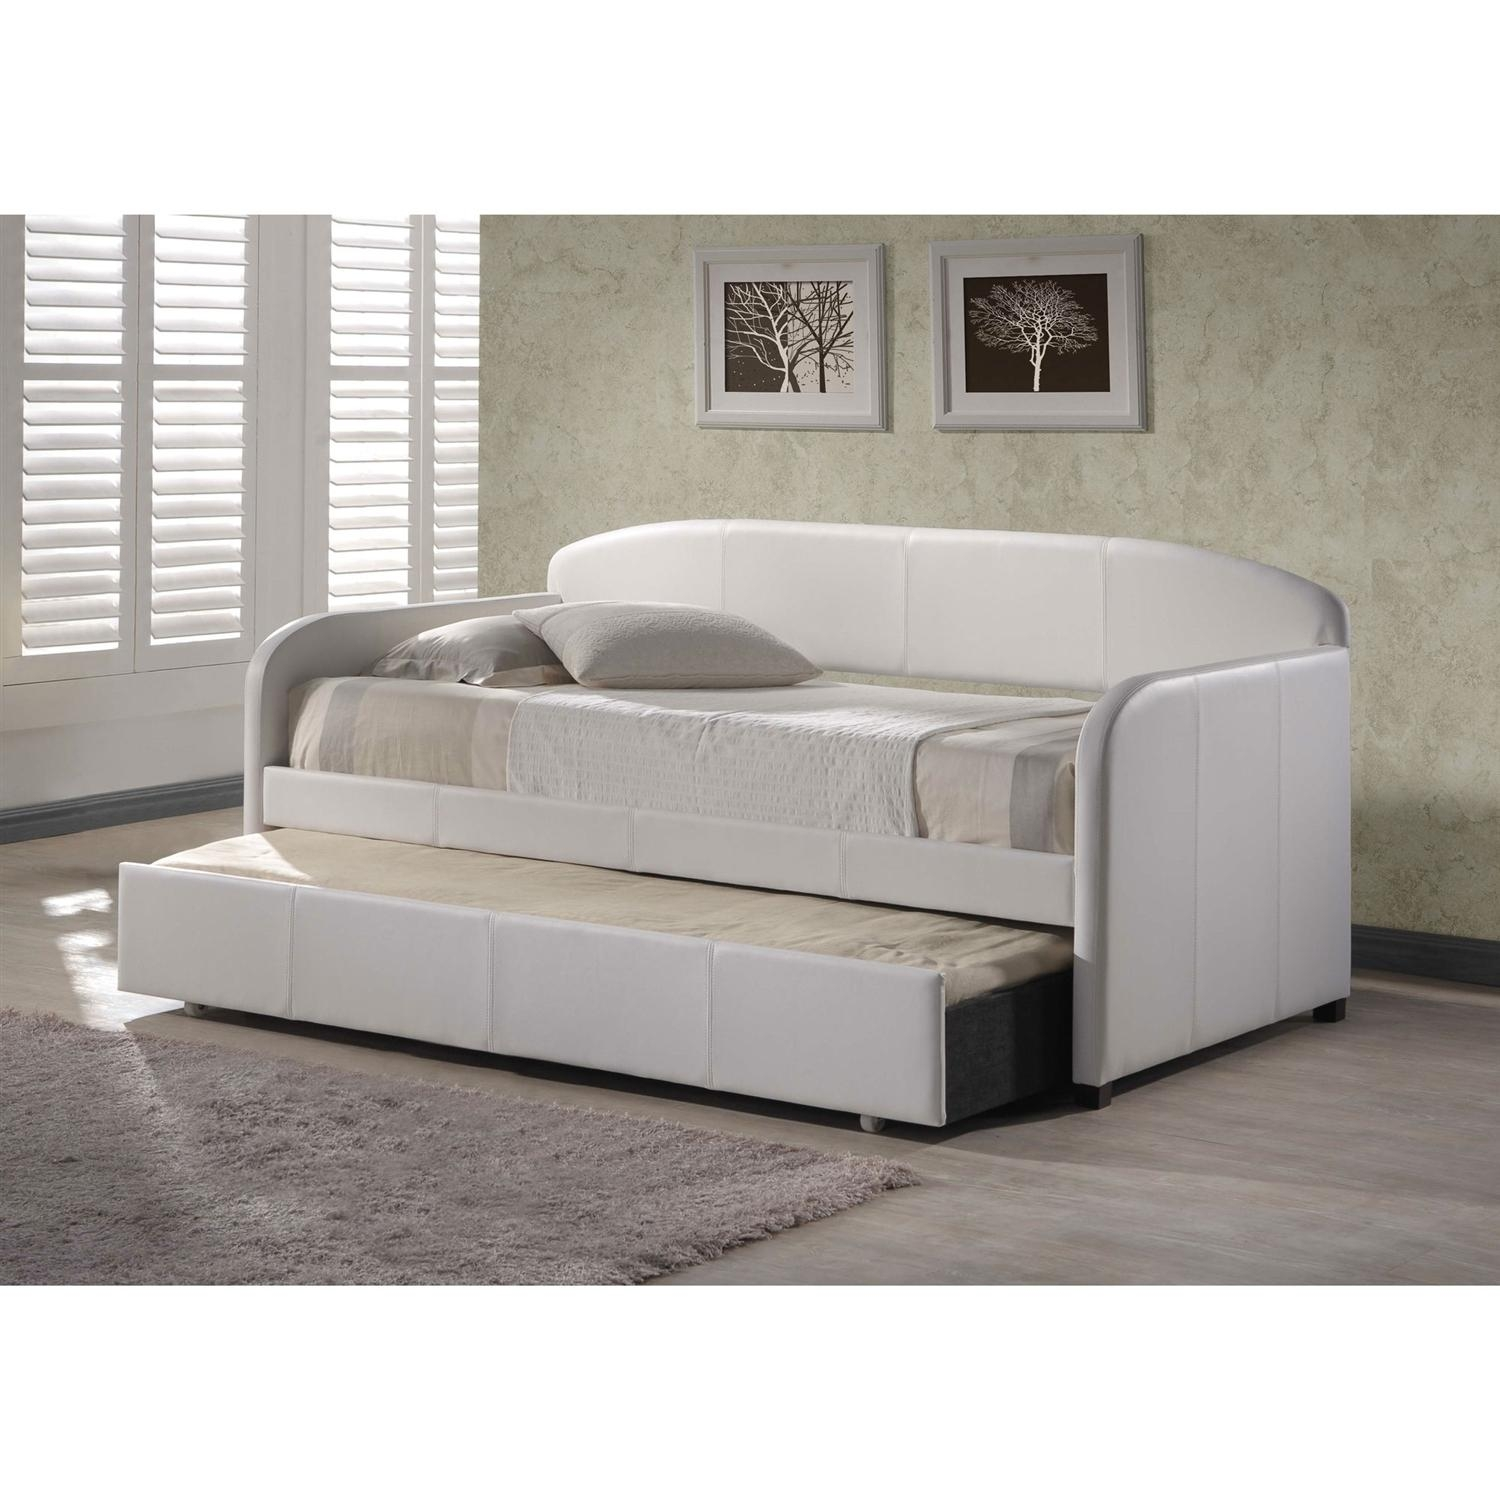 Endearing Twin Daybed Frame With Pop Up Trundle Pop Up Daybed Within Sofas Daybed With Trundle (Image 7 of 20)